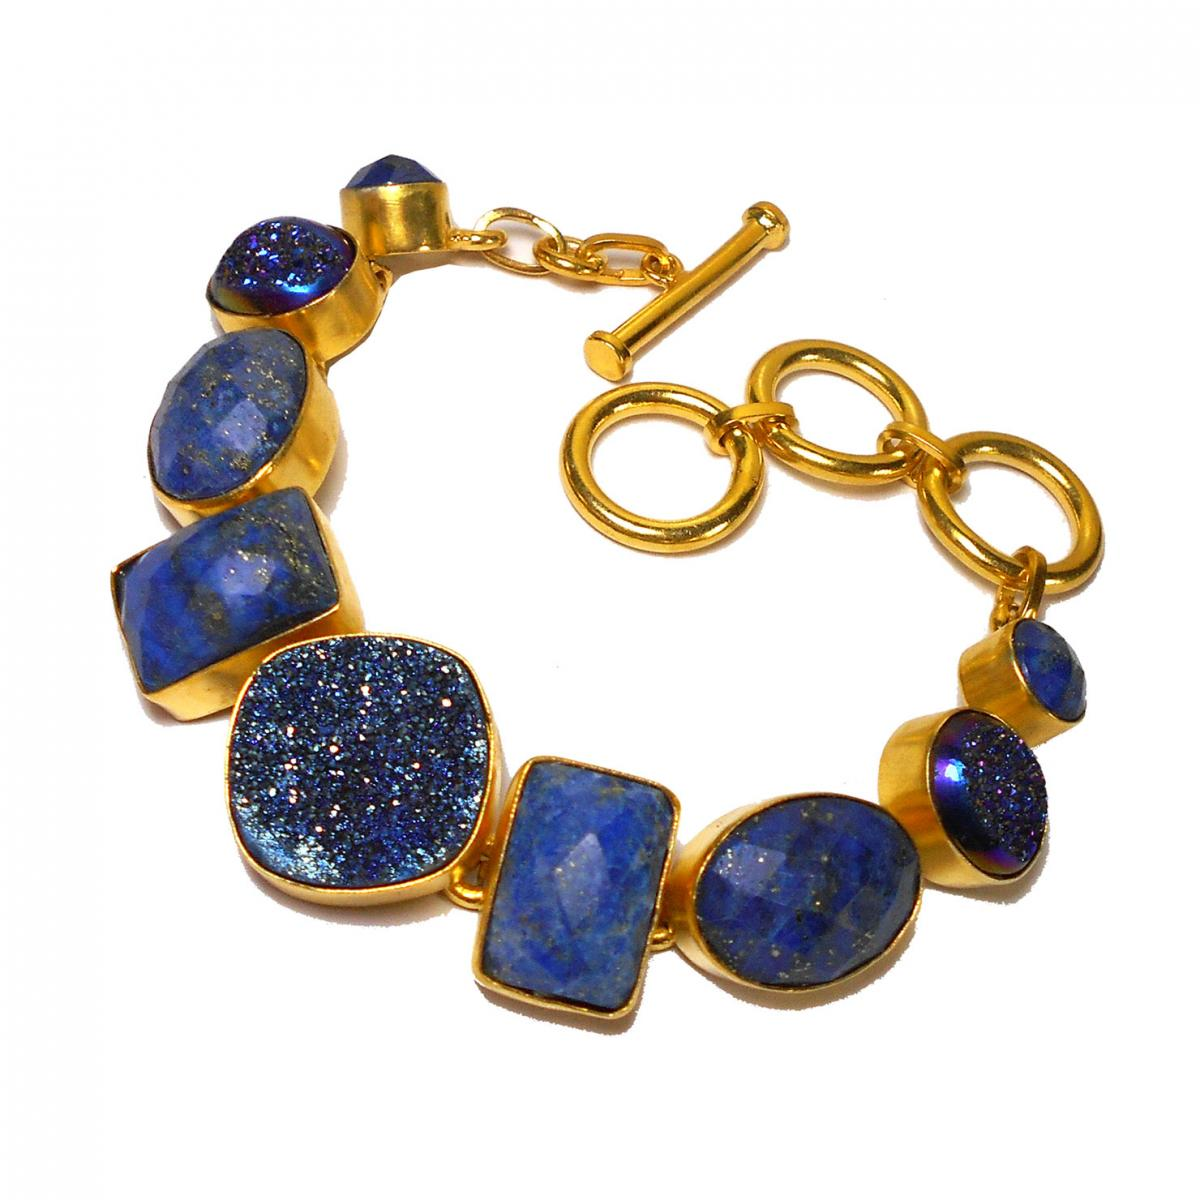 Lapis lazuli, Window drusy D - BSB992- Royal fashion Bracelets with Brass gold plated